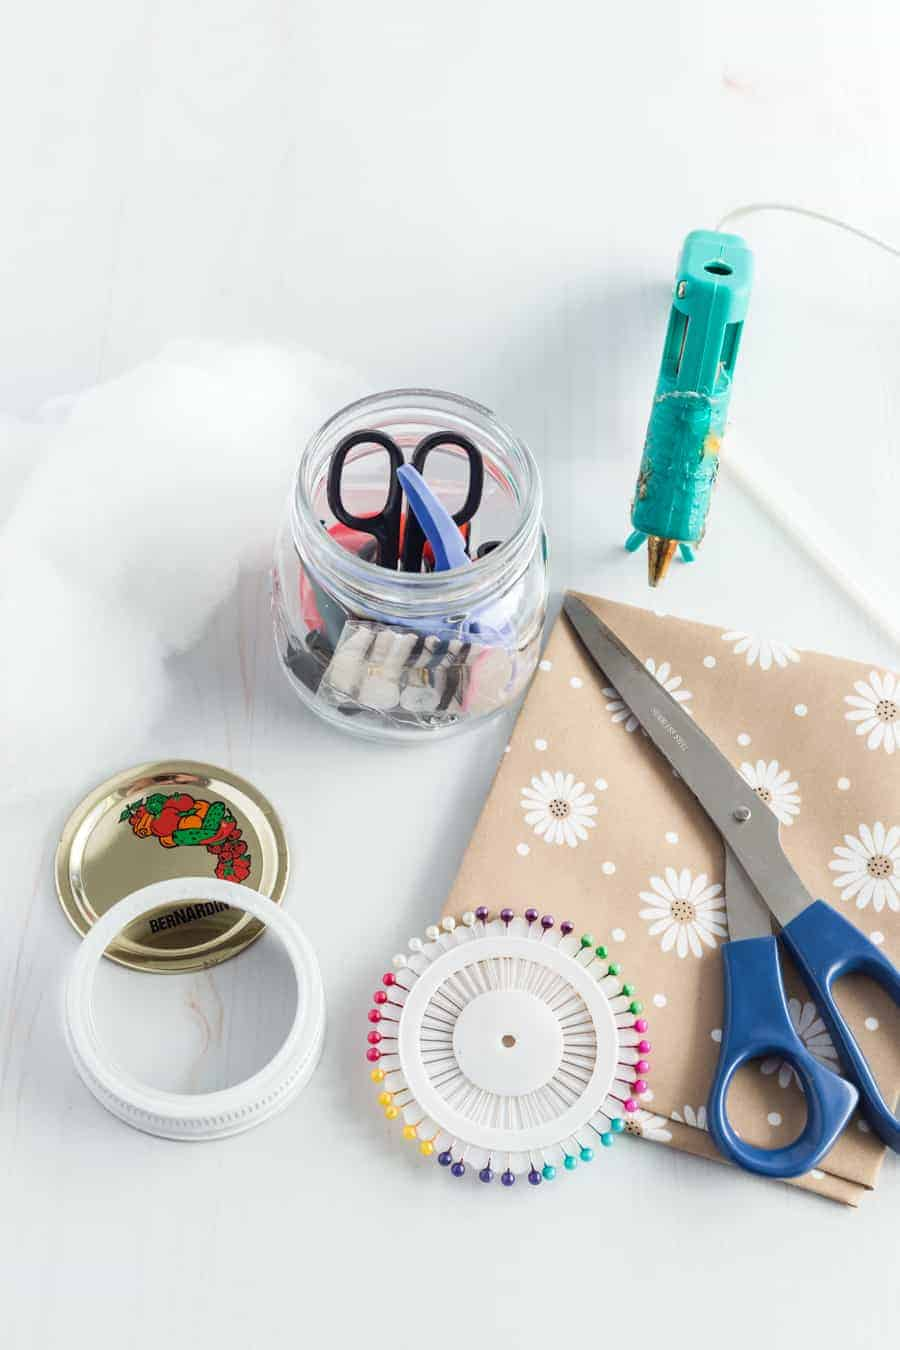 A clear jar with some sewing tools in it and the lid laid out. Some paper with scissors on it and glue gun nearby, as well as some pins.